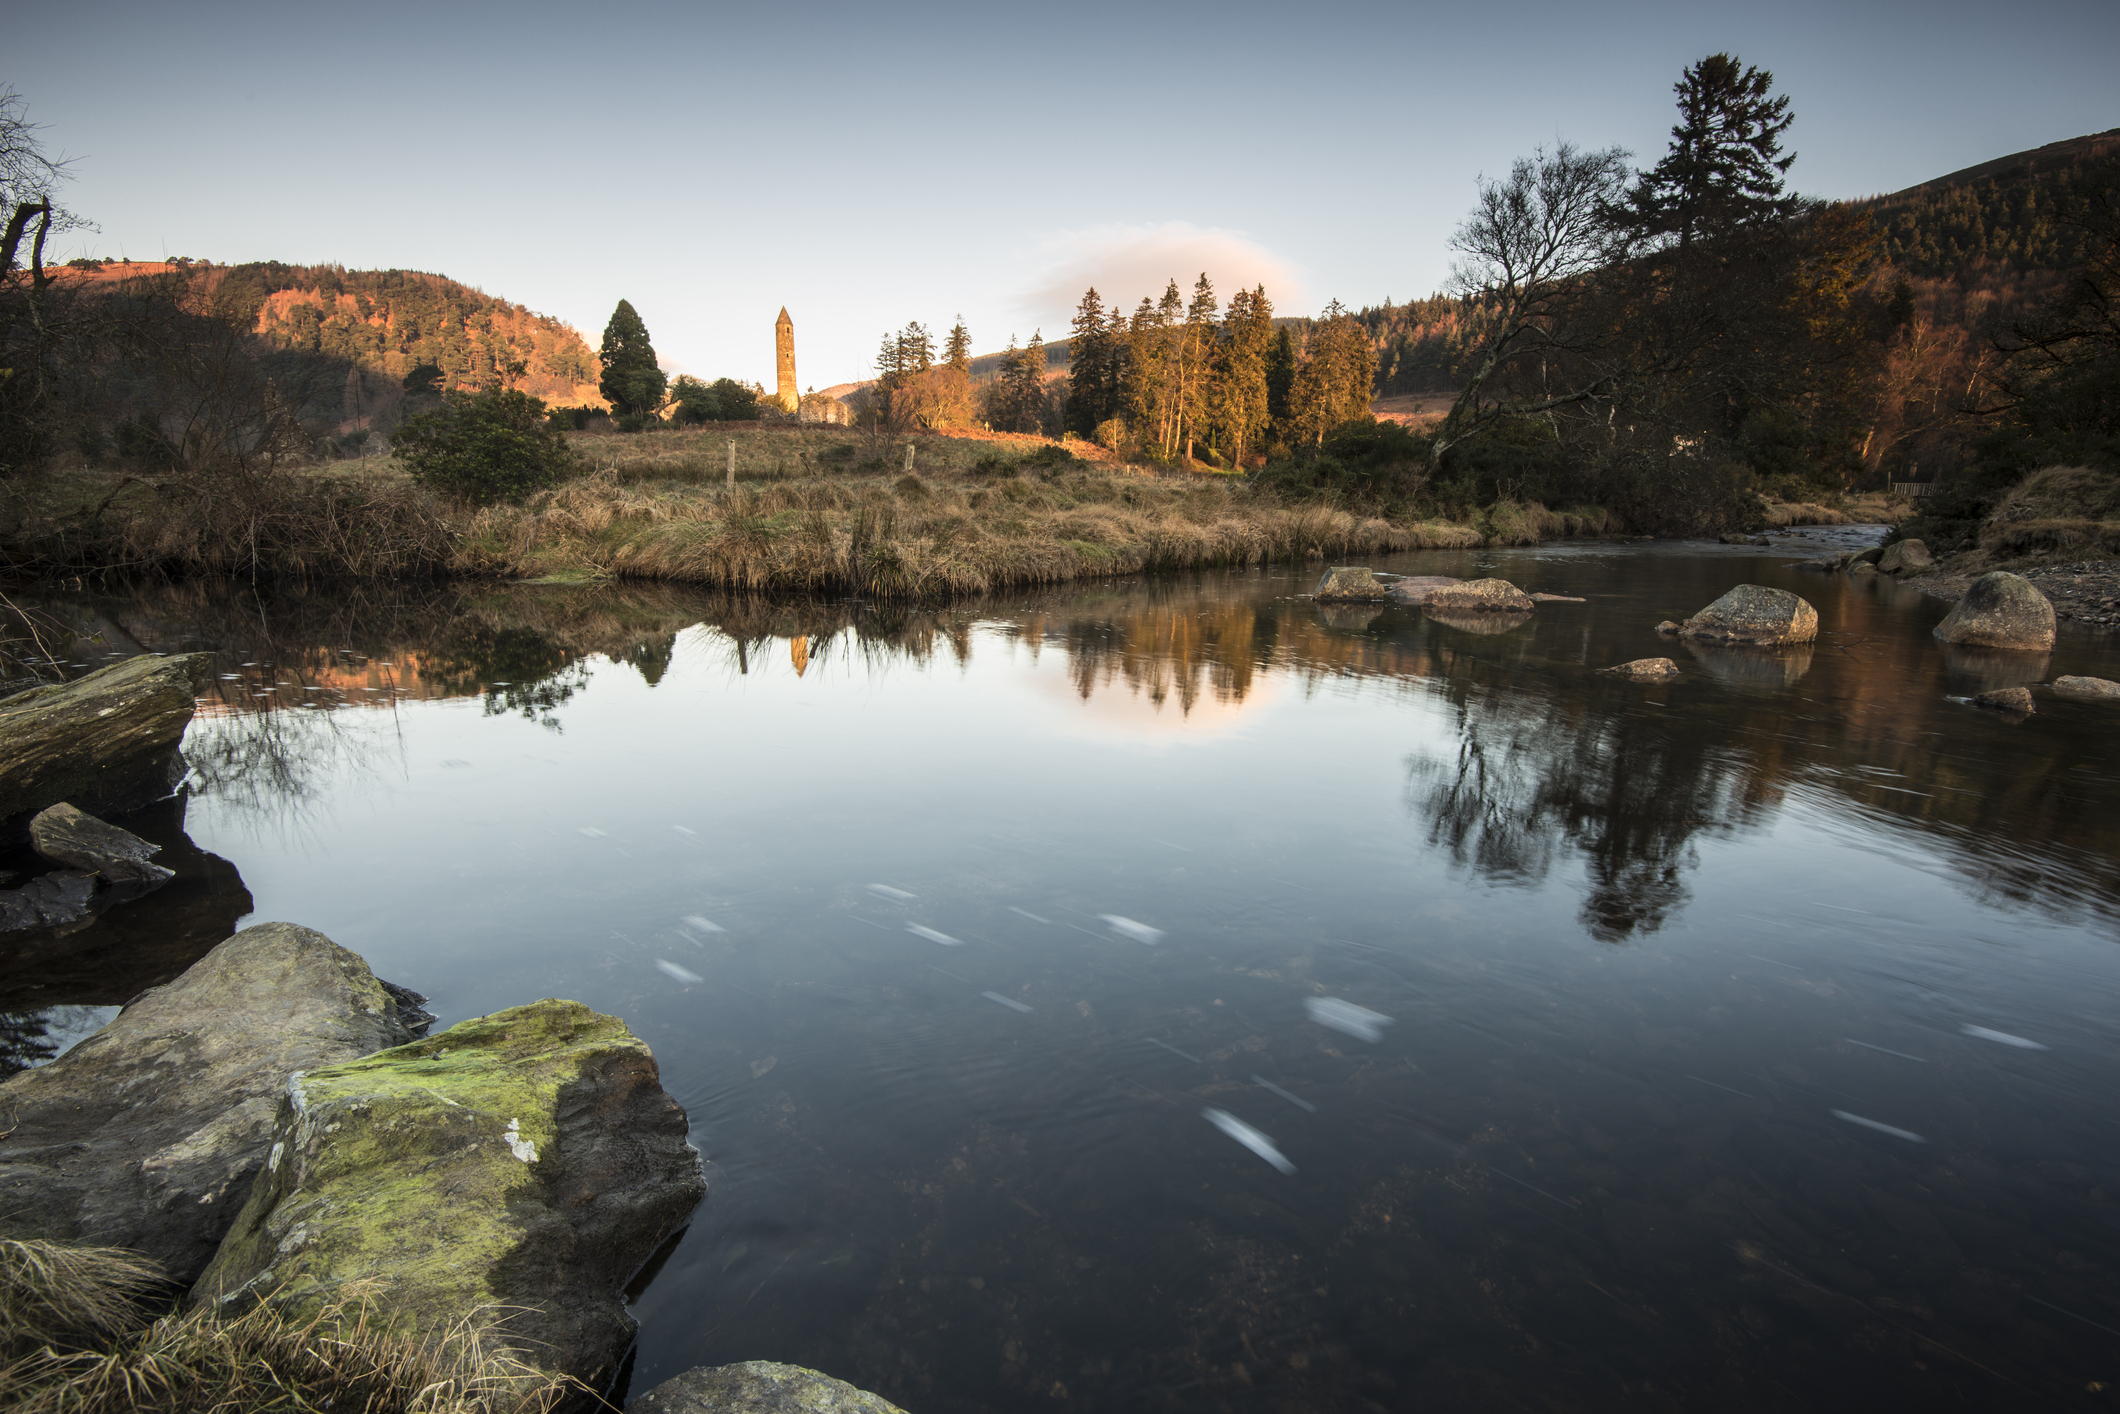 Sunrise over the ruins of Glendalough as the smooth waters of the river reflect the beautiful scenery of the Wicklow Mountains National Park.